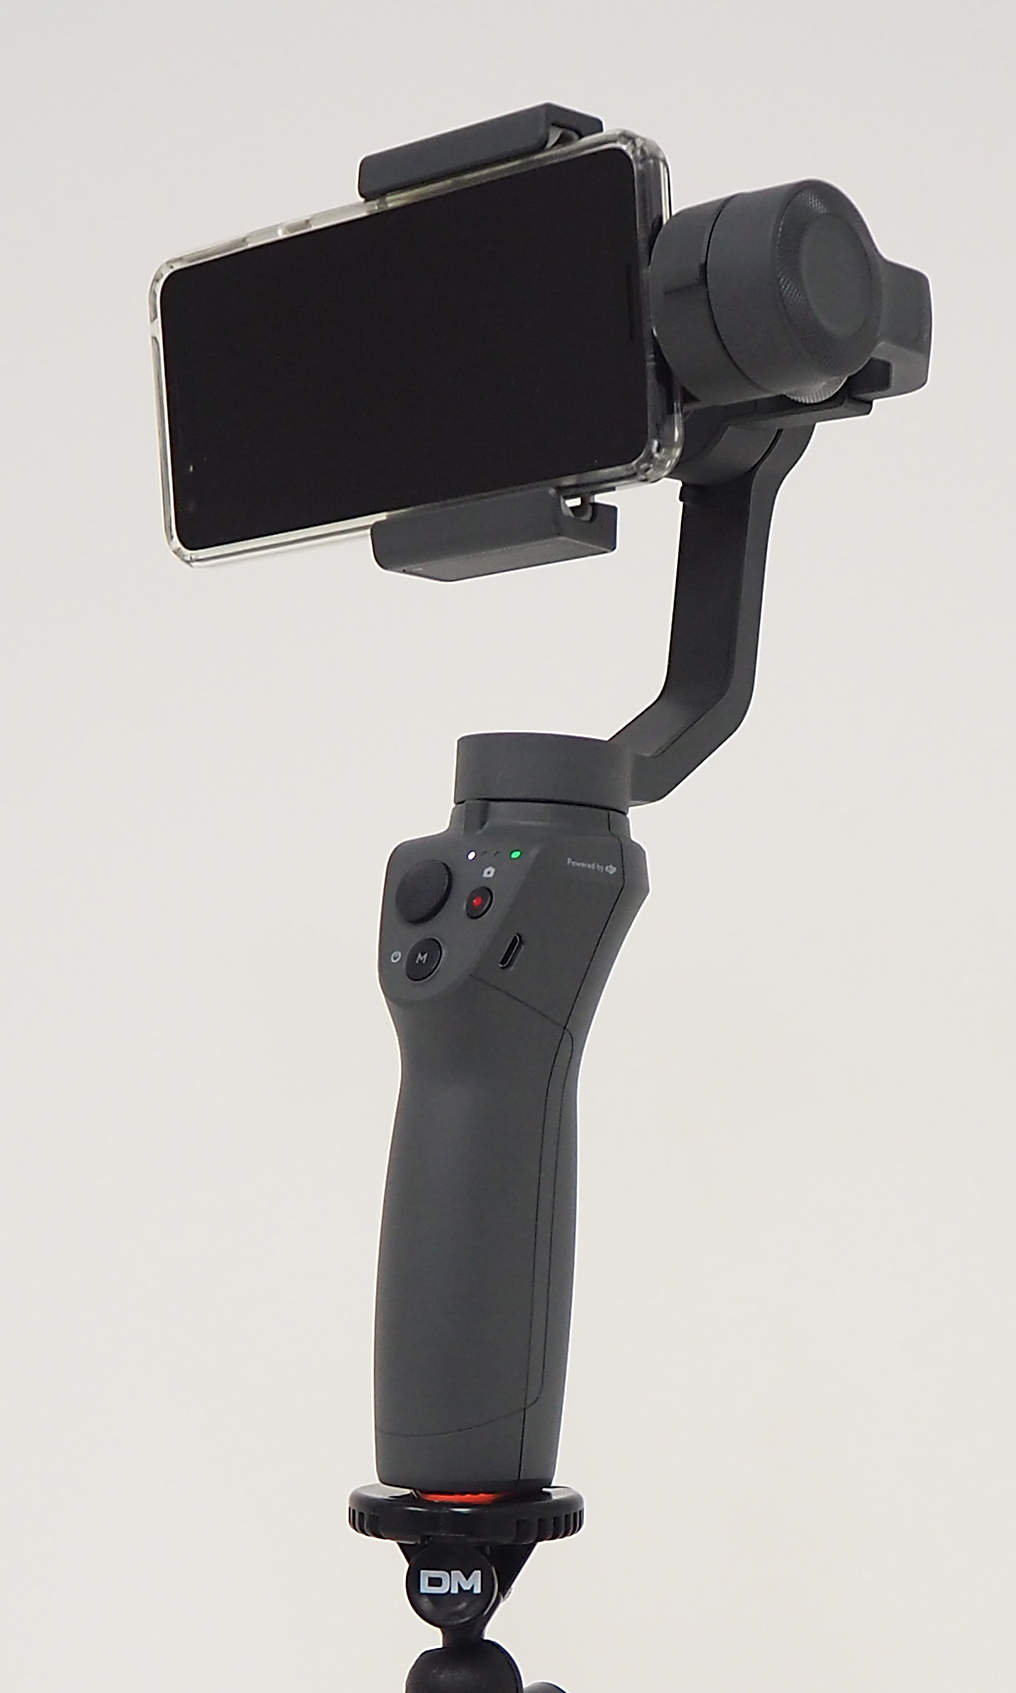 Osmo gimbal stabilizer